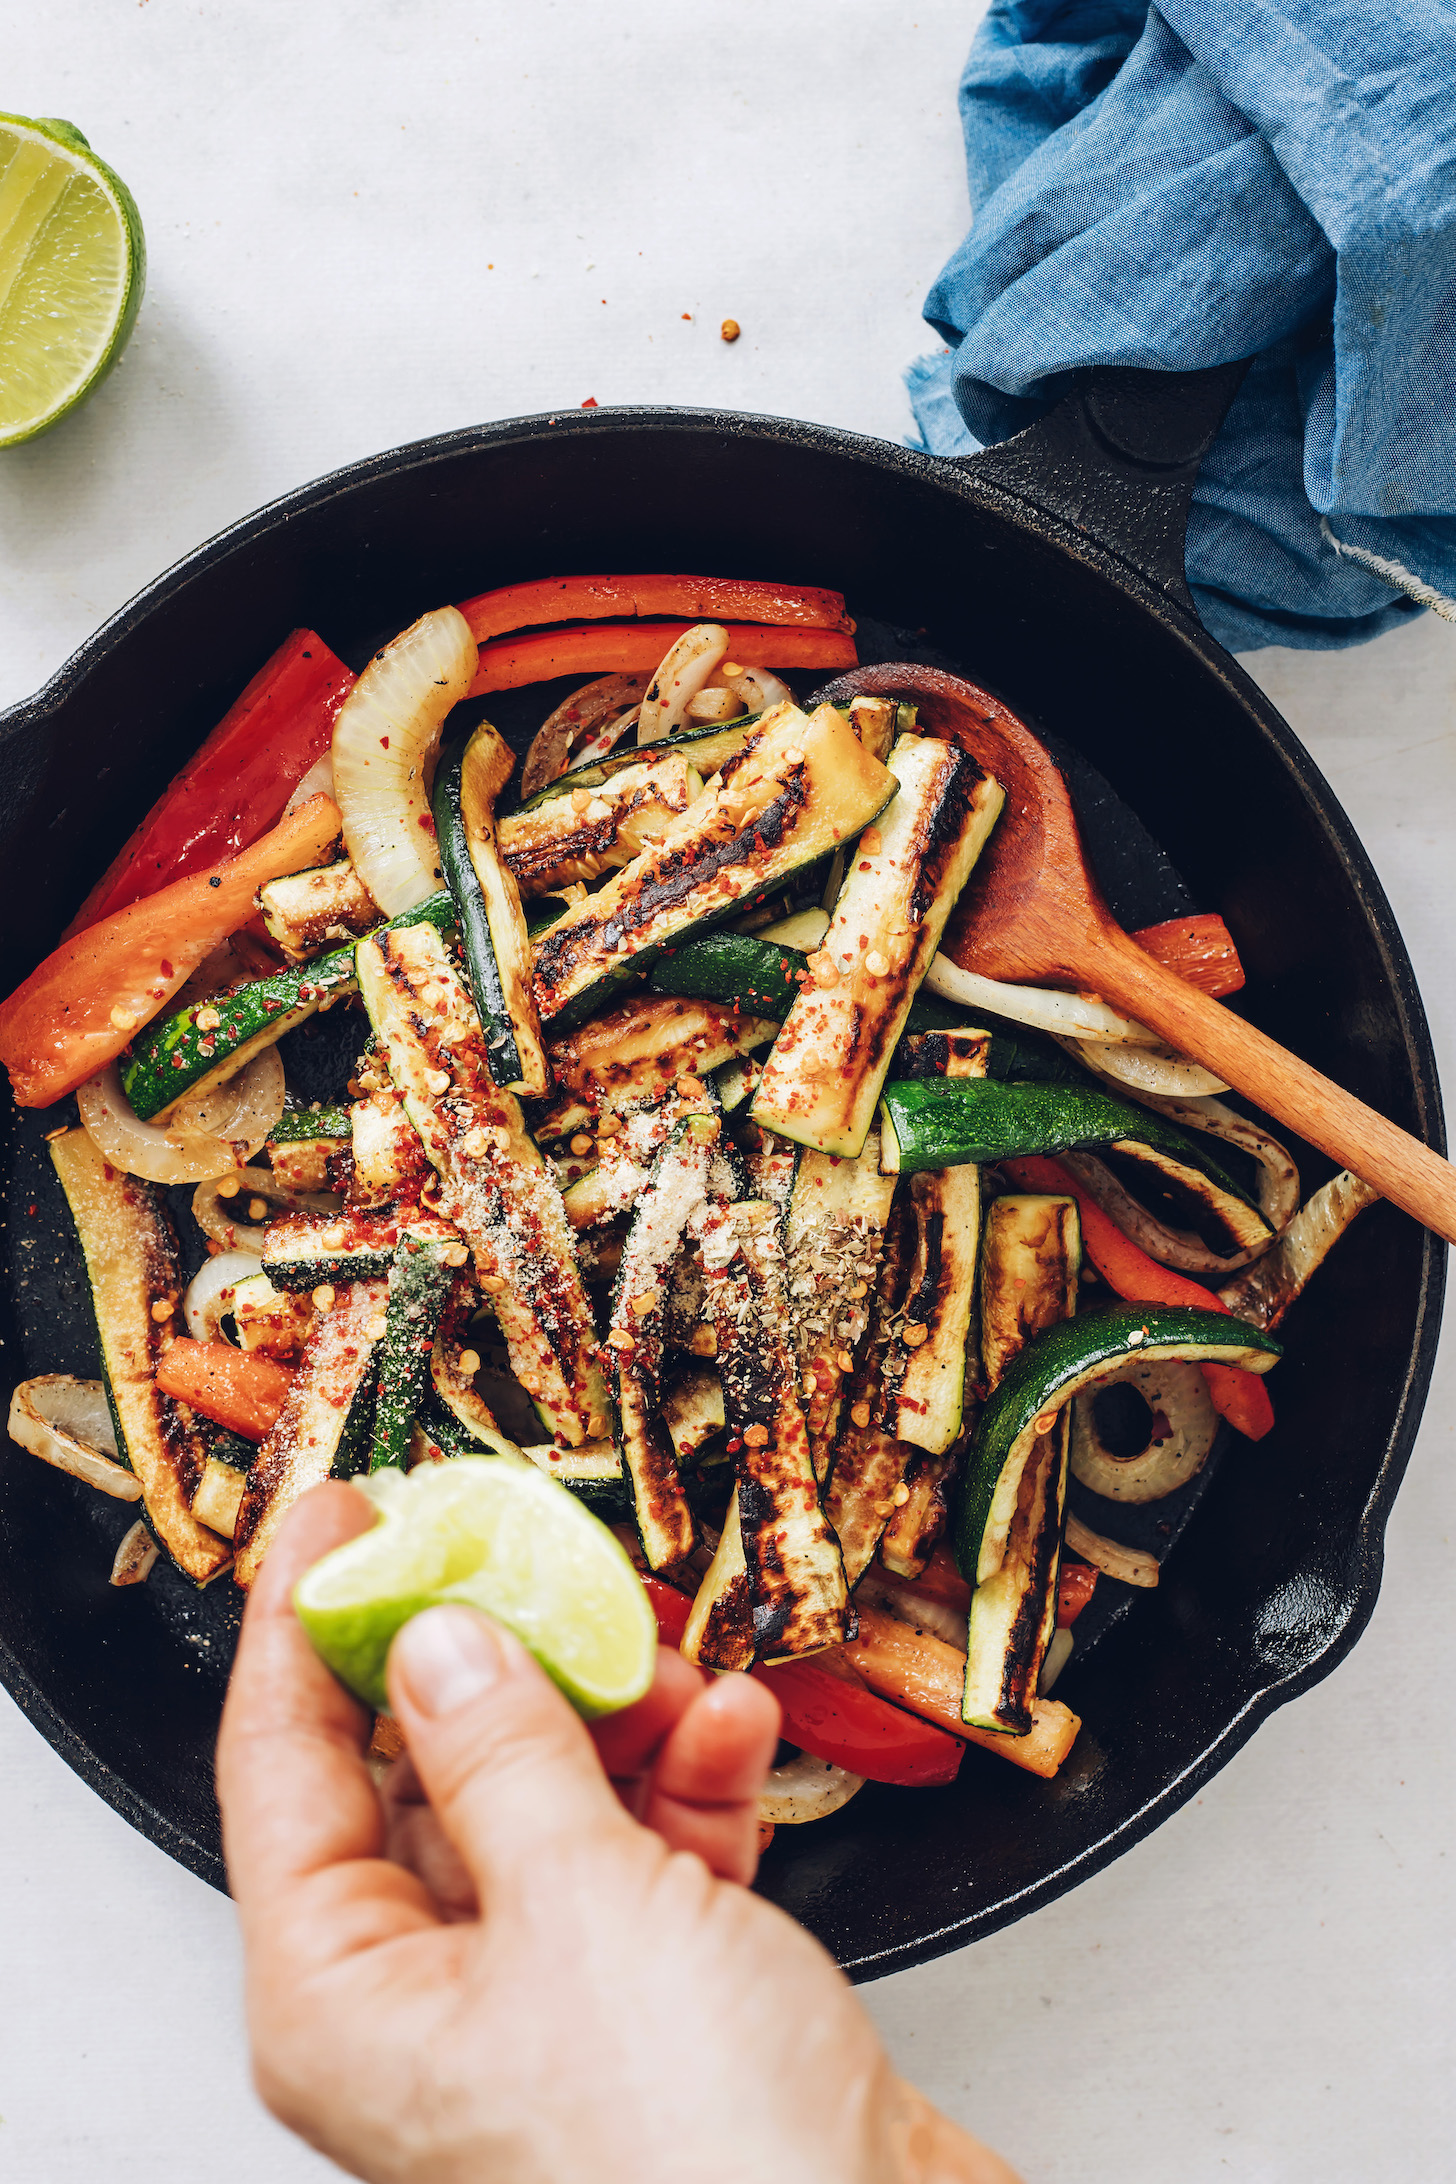 Squeezing lime into a skillet of sautéed onion, zucchini, bell pepper, and spices